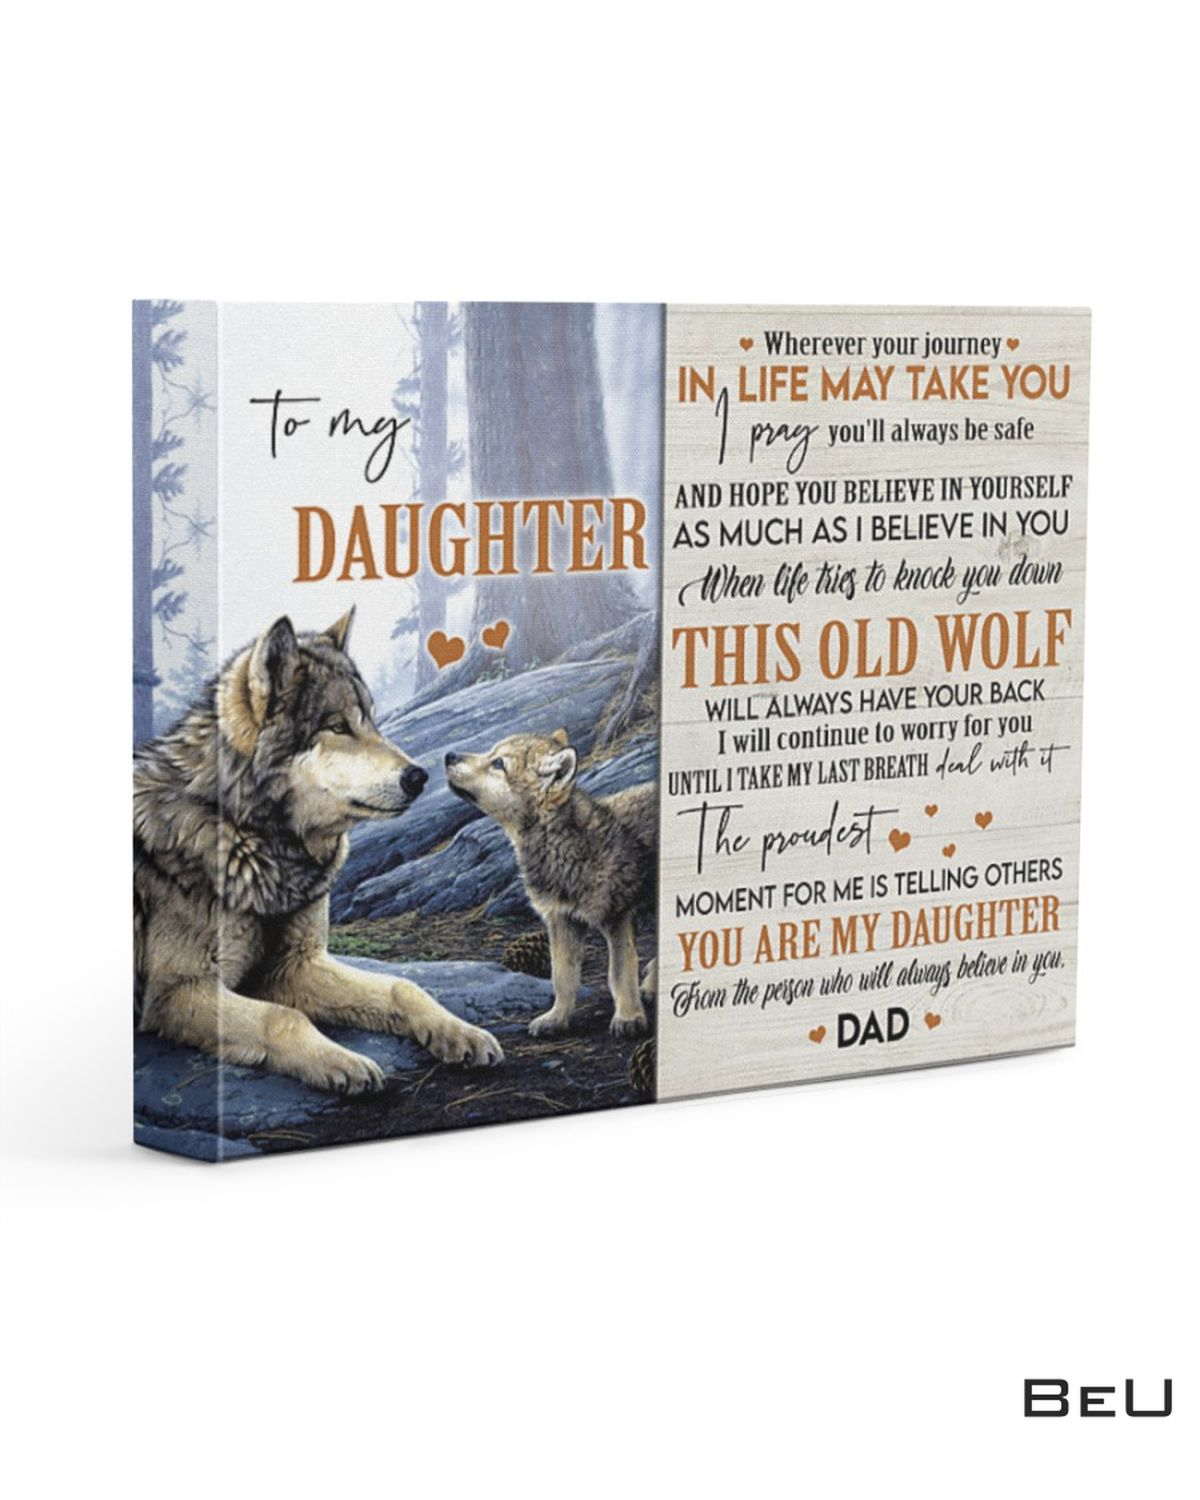 I Pray You'll Always Be Safe - Best Gift For Daughter Canvas